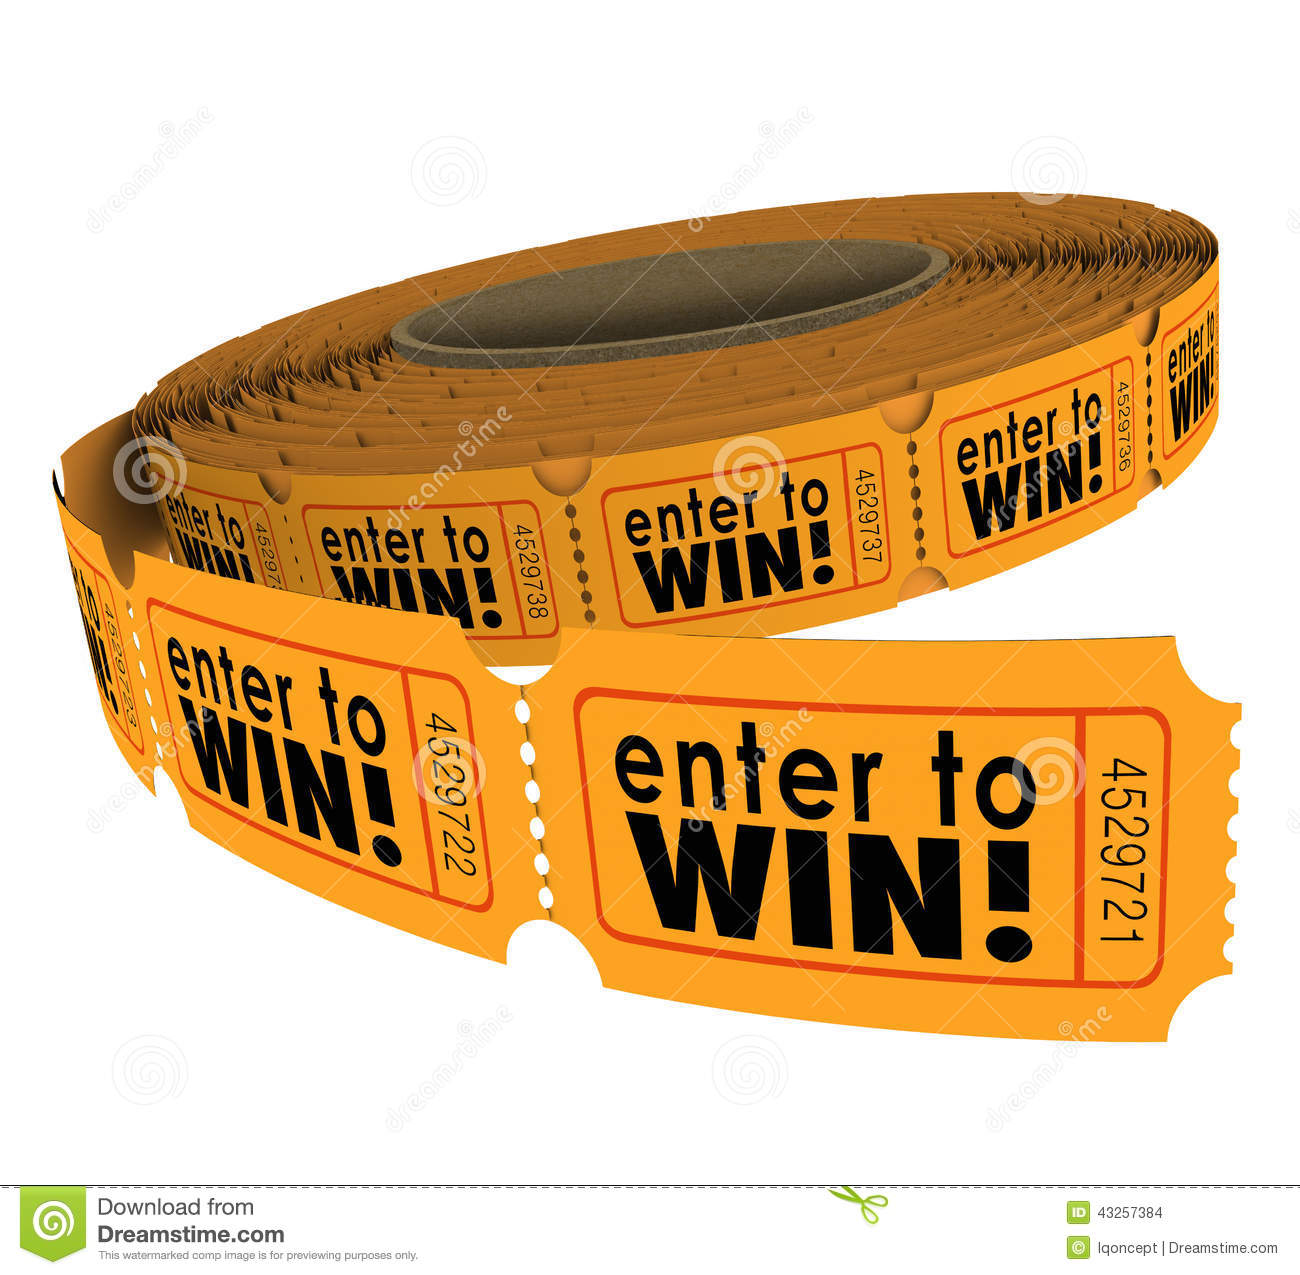 enter to win clipart clipart kid enter to win words on a roll of orange raffle or lotter tickets as a